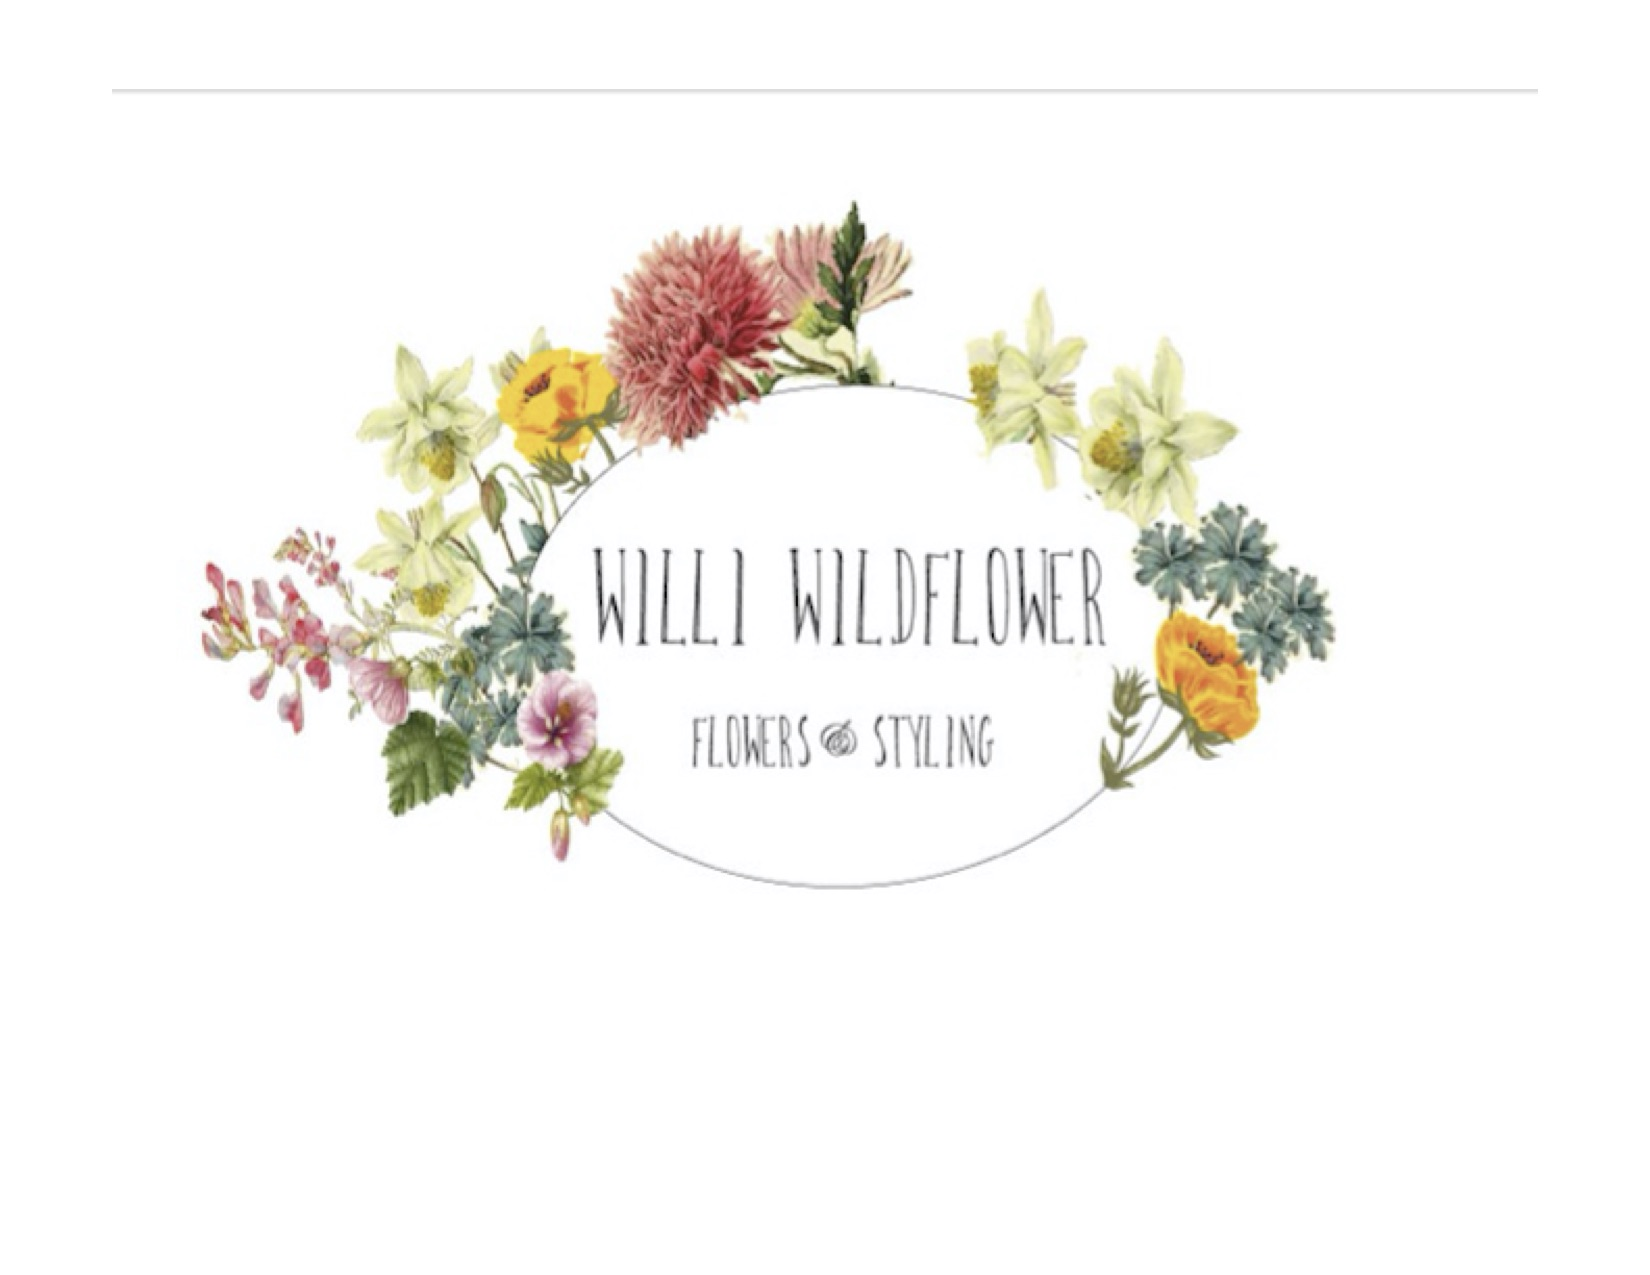 Willi Wildflower Logo .jpg